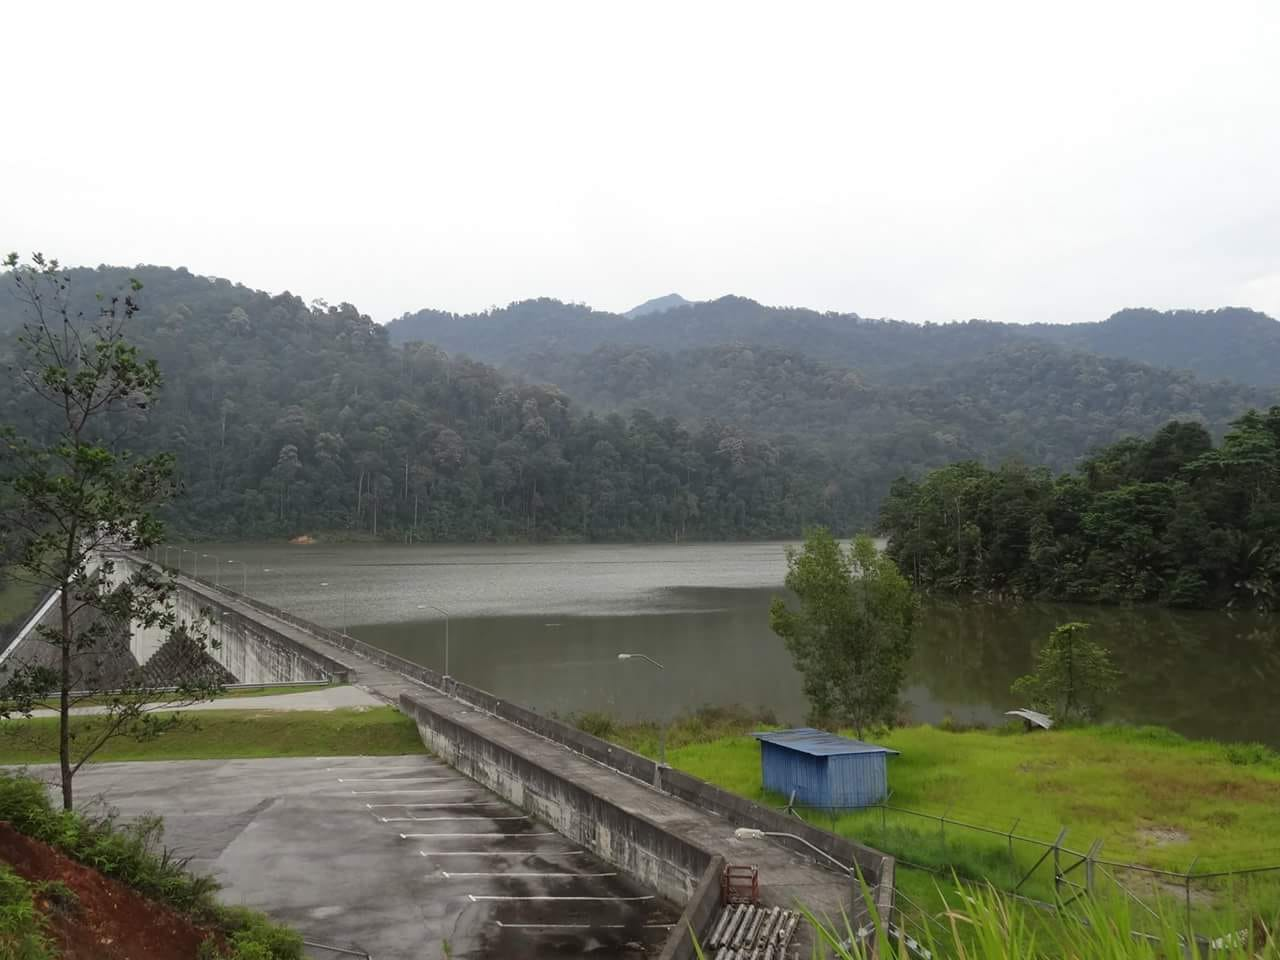 07 An Ulu Kinta dam, on the way to gunung Korbu